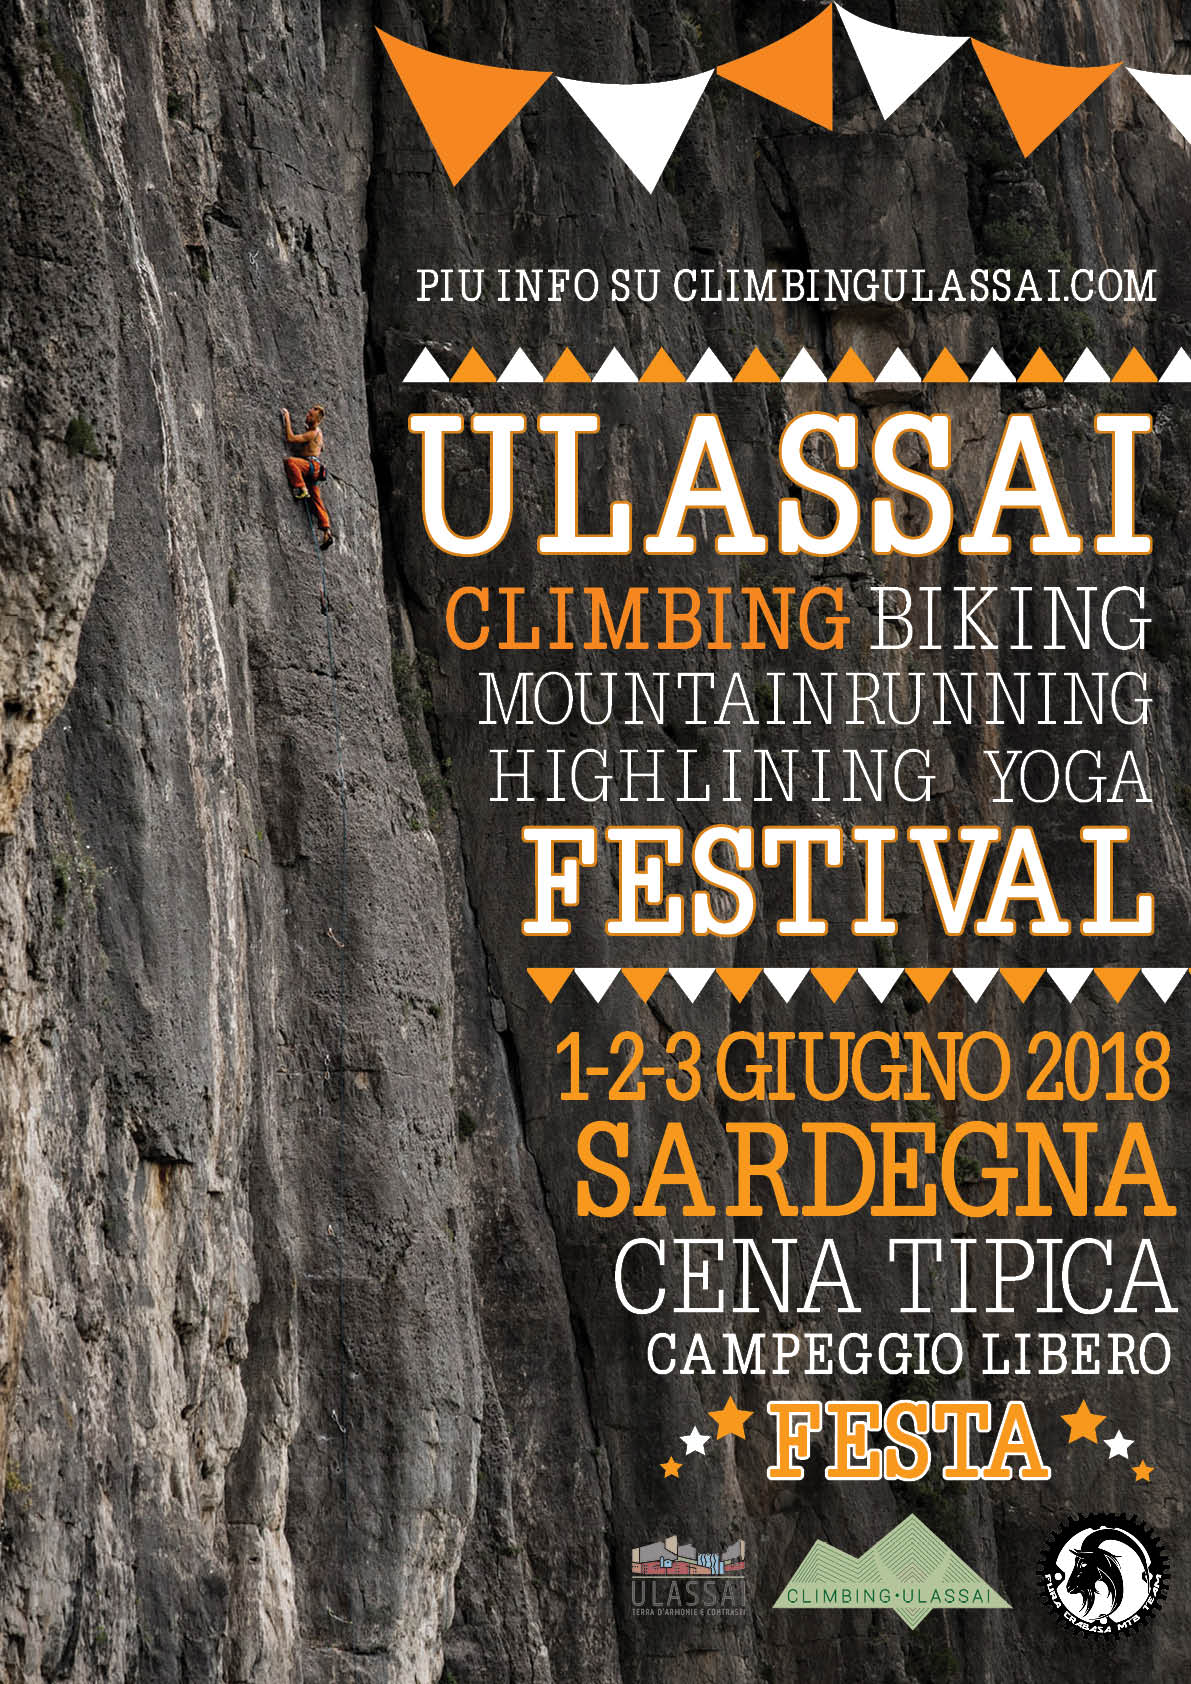 A poster of the festival of ulassai